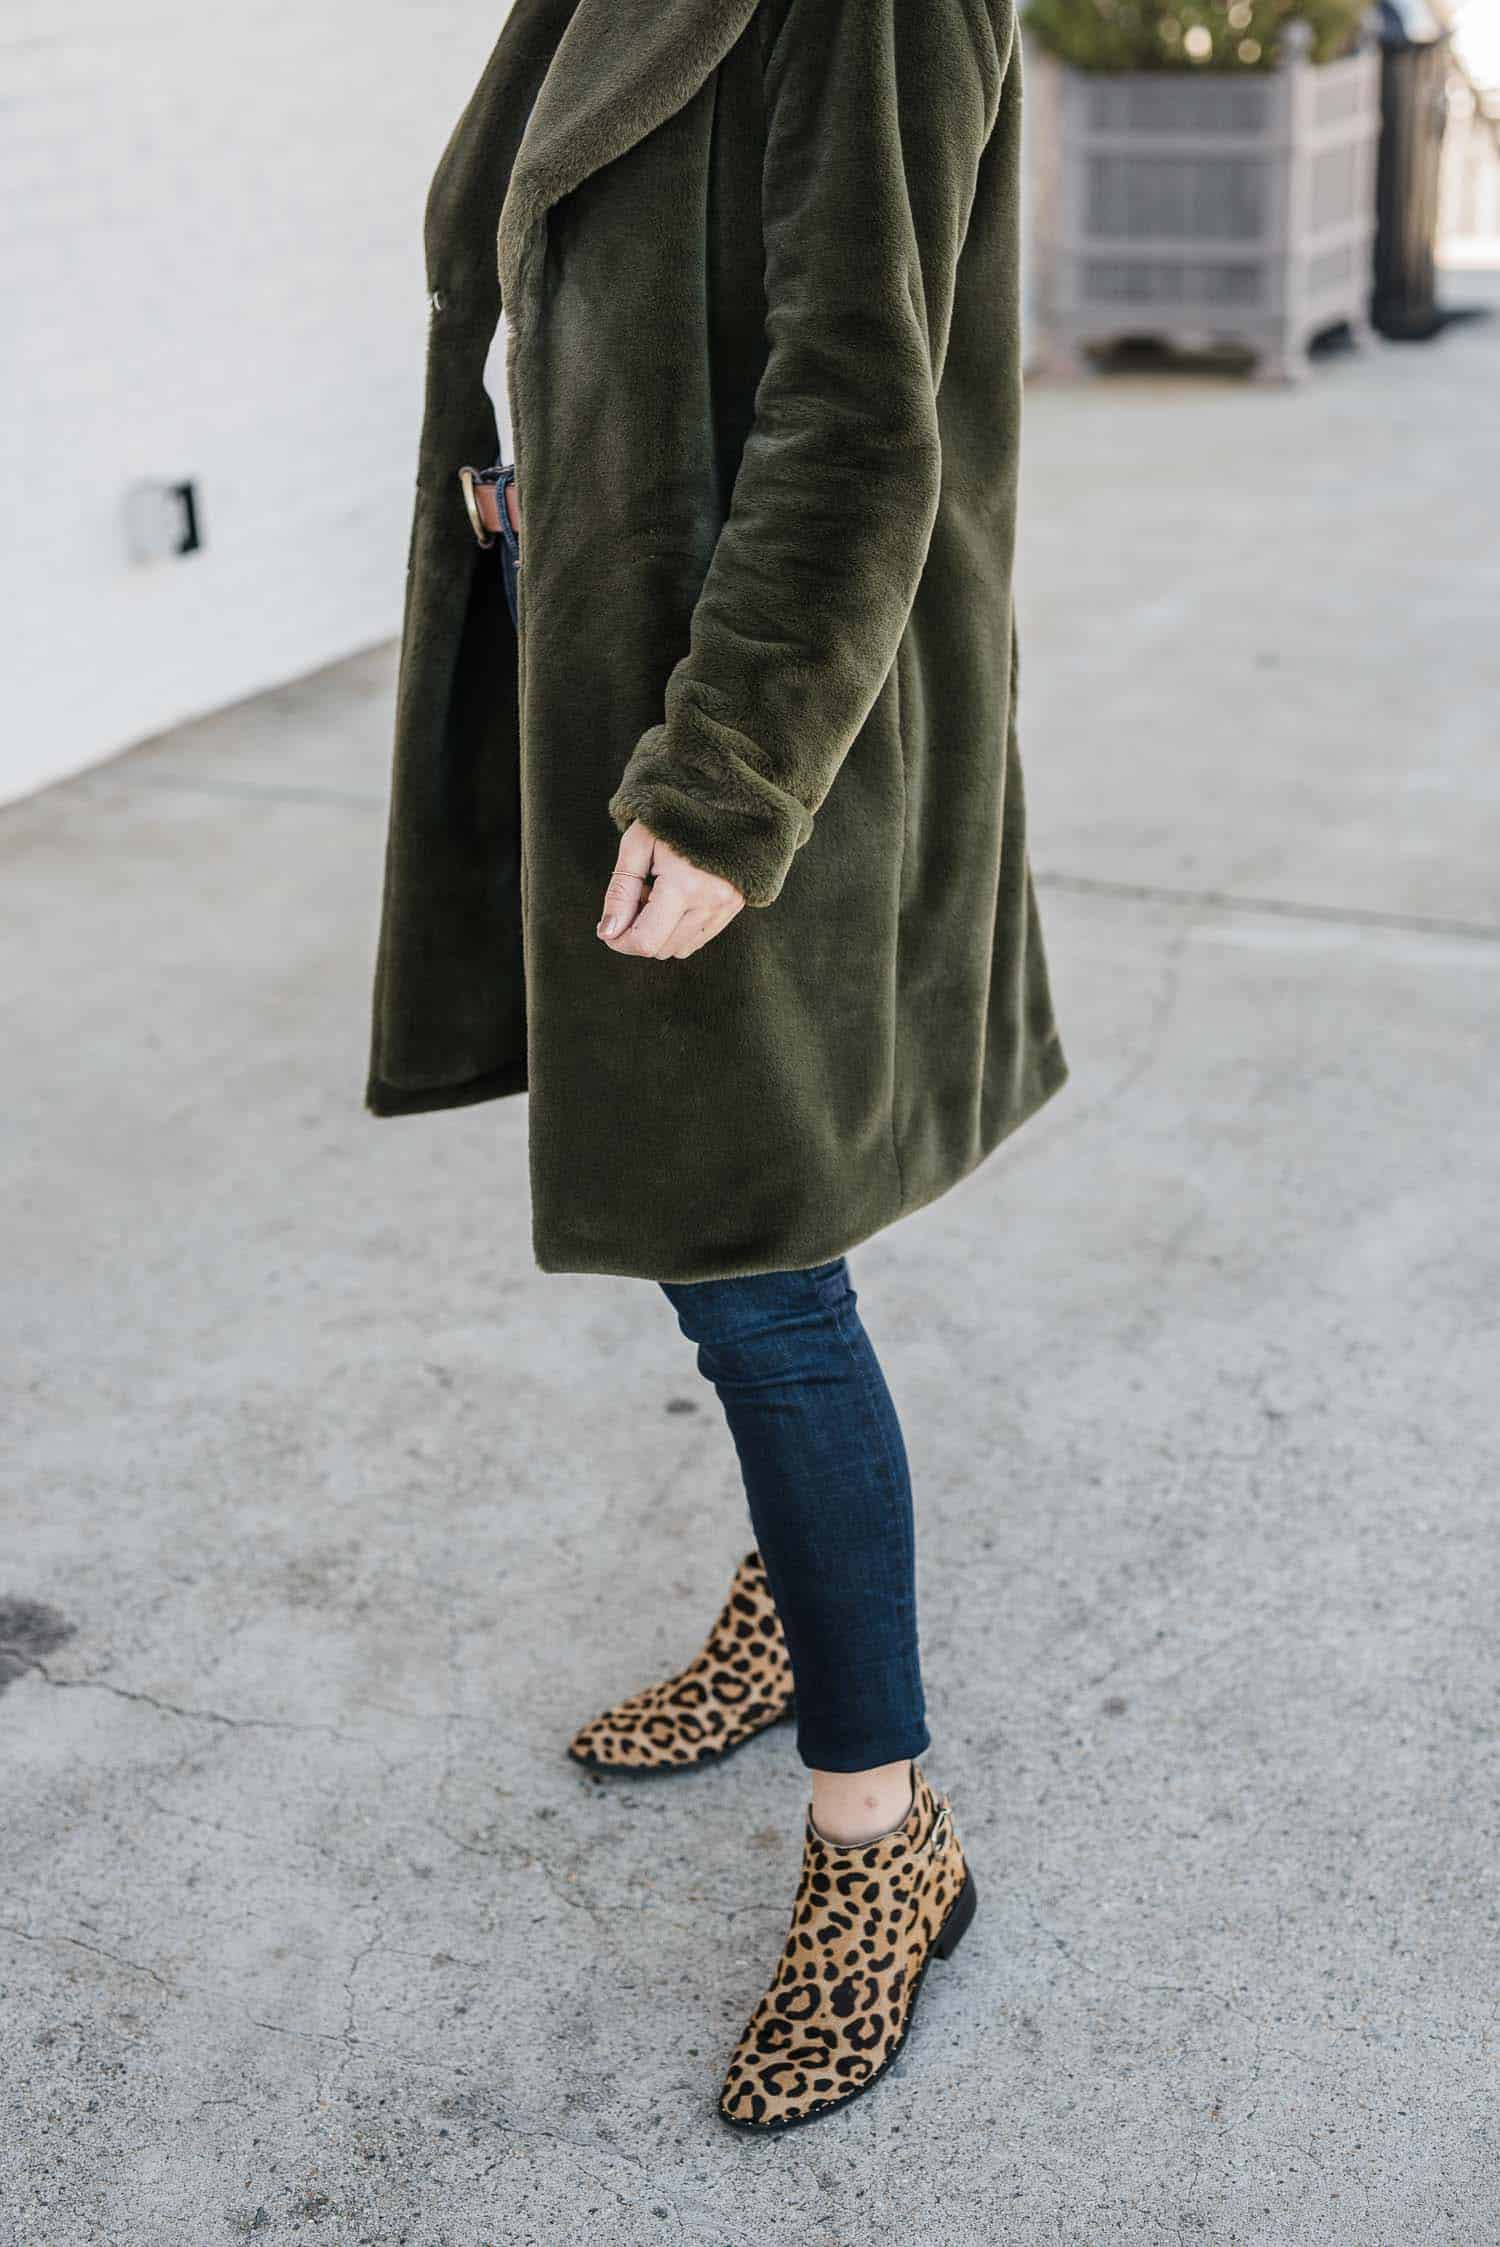 Green faux fur coat, jeans and leopard boots